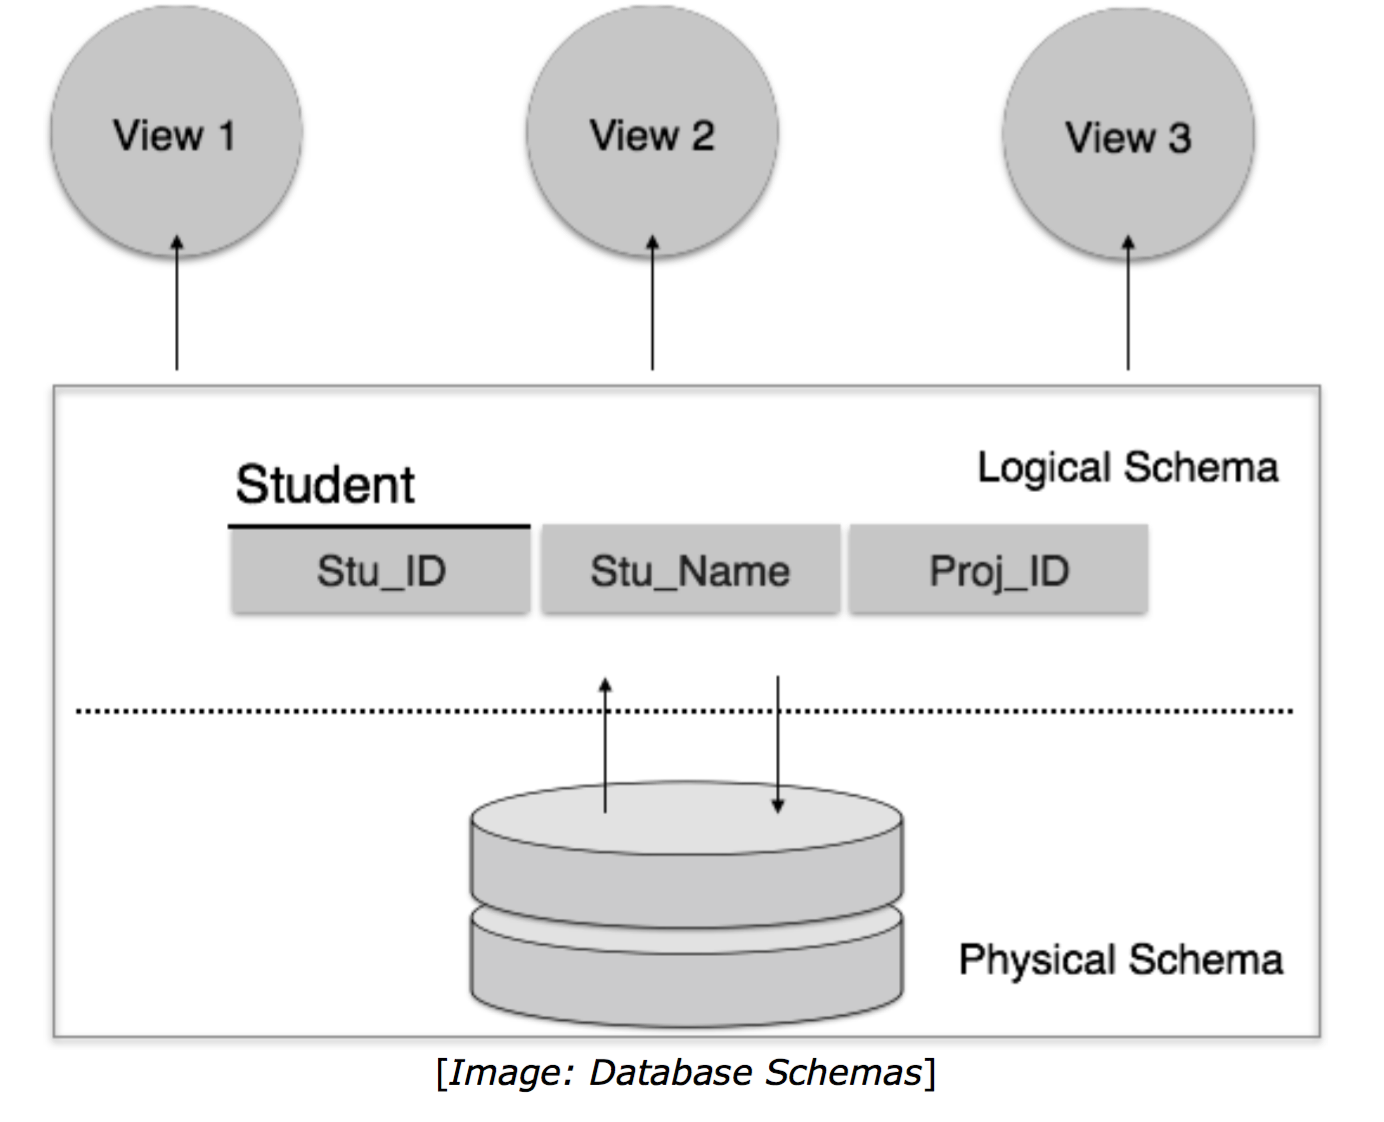 Lesson 2 instances schemas and data models sicte 11 database it contains a descriptive detail of the database which can be depicted by means of schema diagrams its the database designers who design the schema to pooptronica Gallery